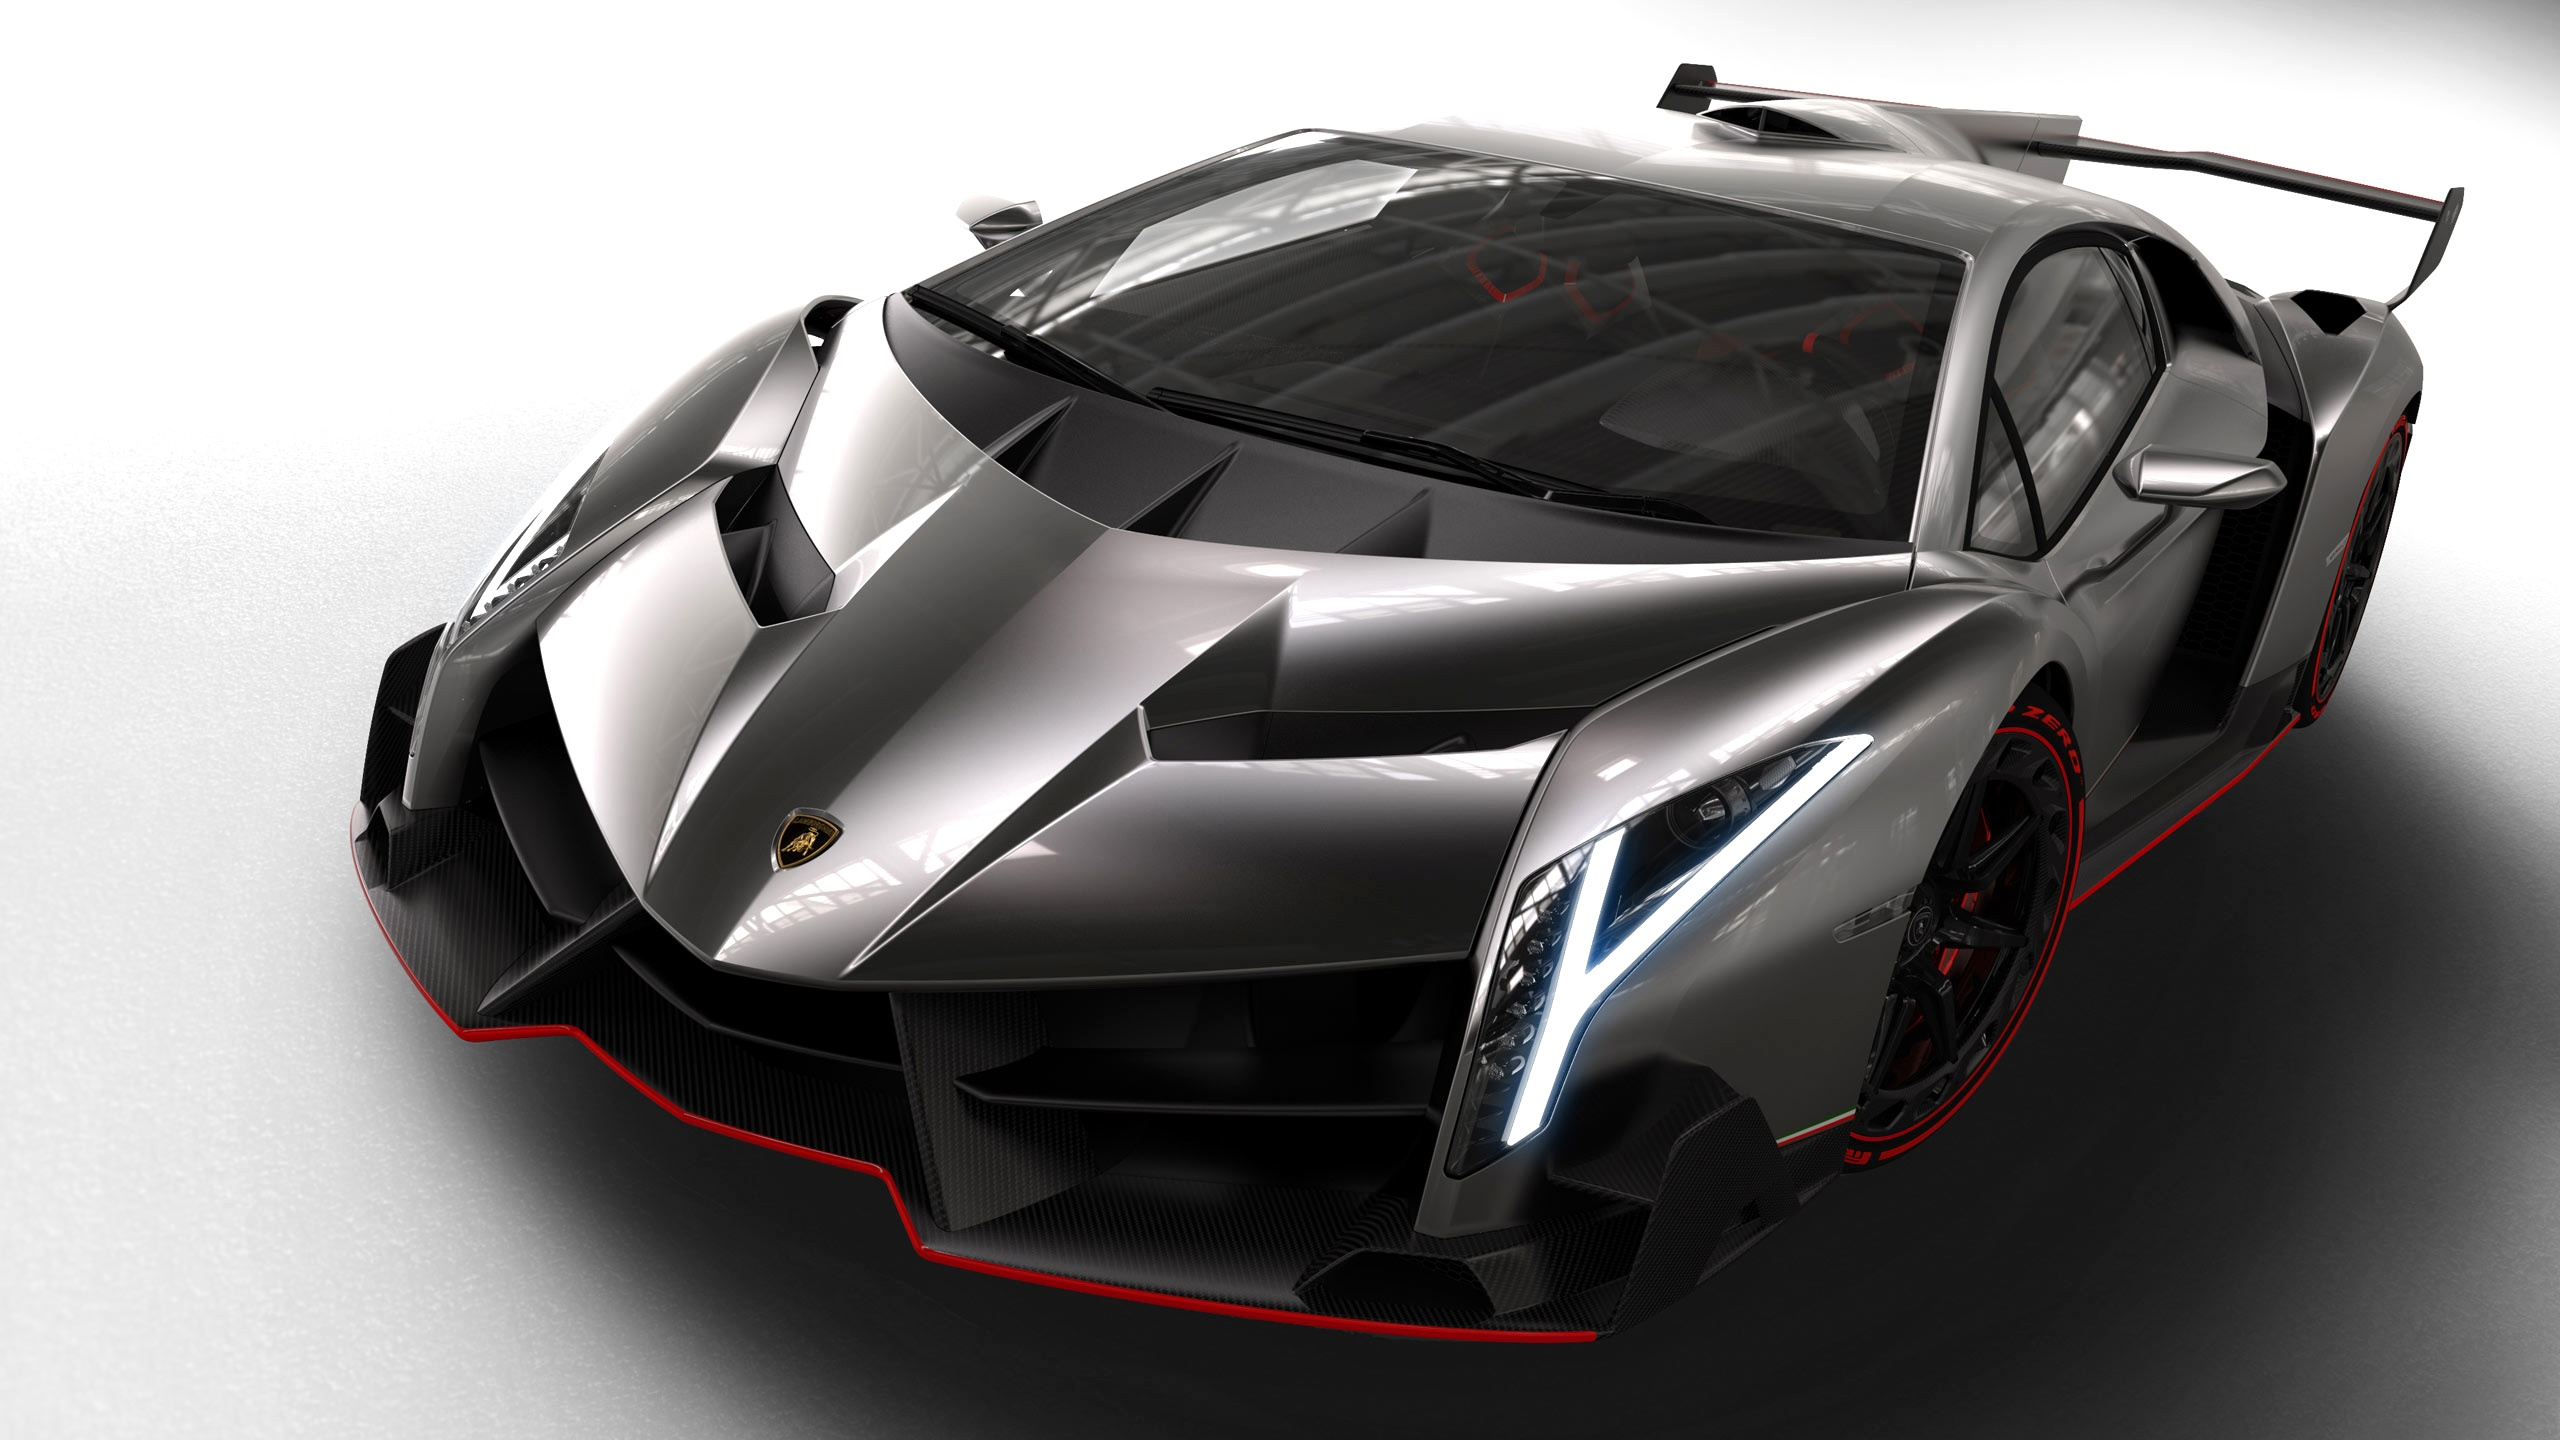 Download Lamborghini Veneno HD Widescreen Lamborghini wallpaper 2560x1440